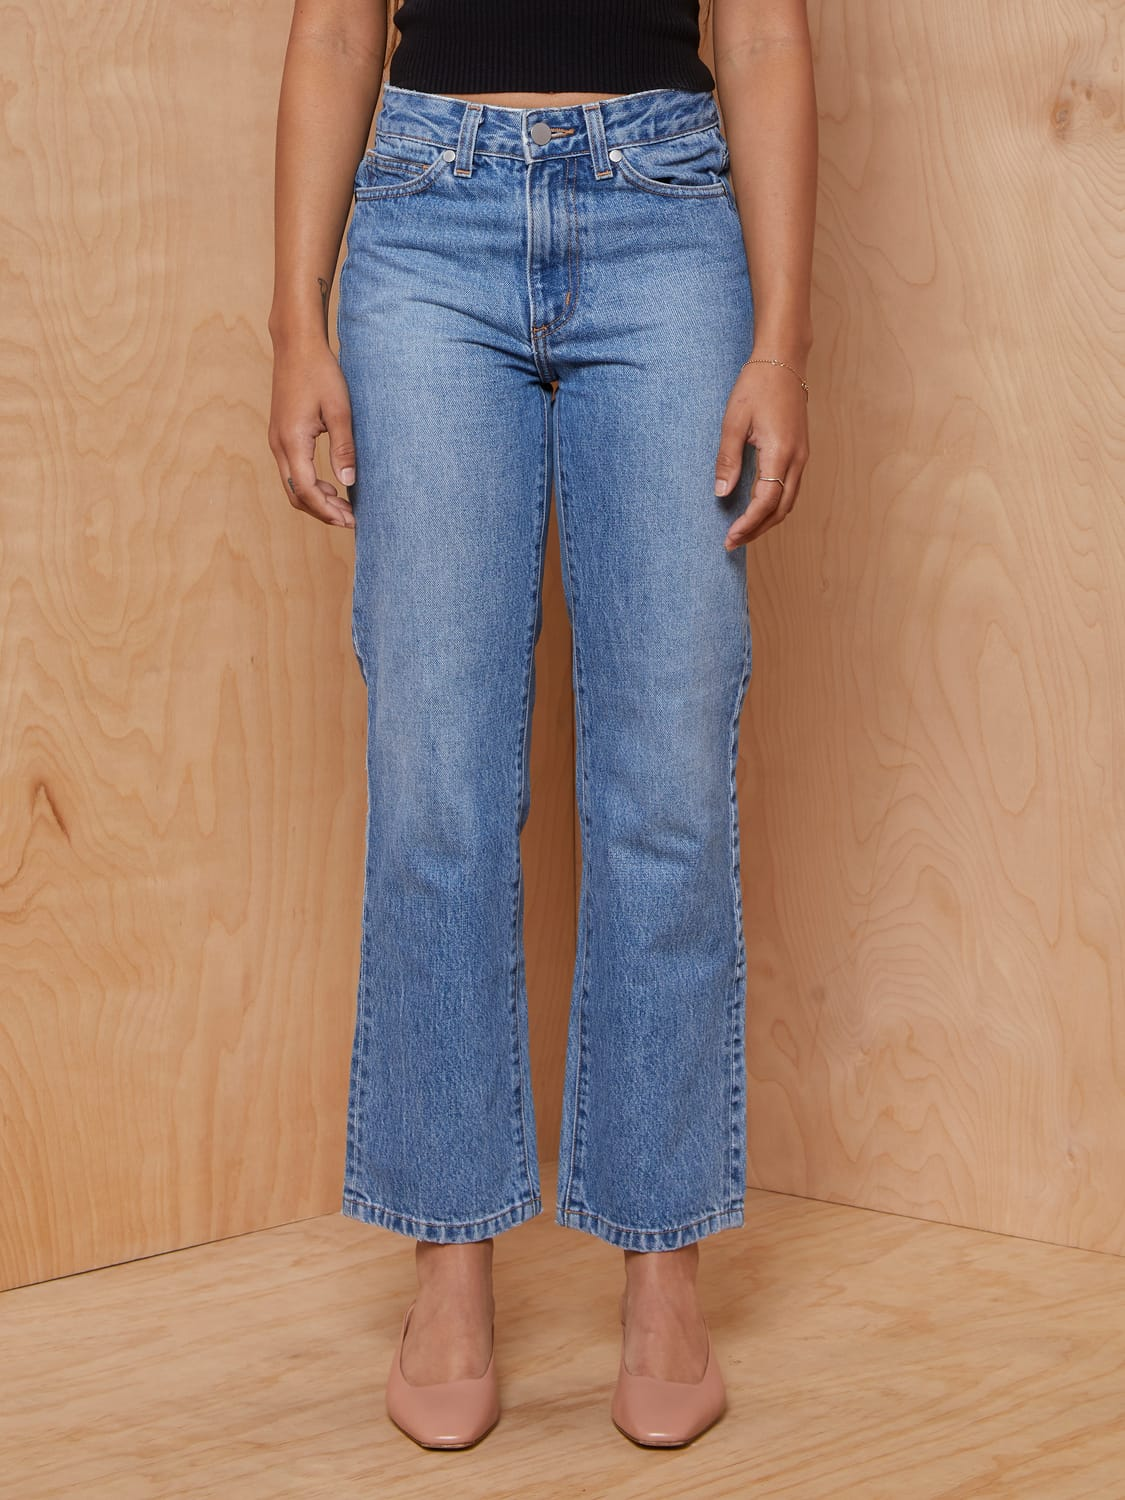 Need Lighwash Straight Leg Jeans